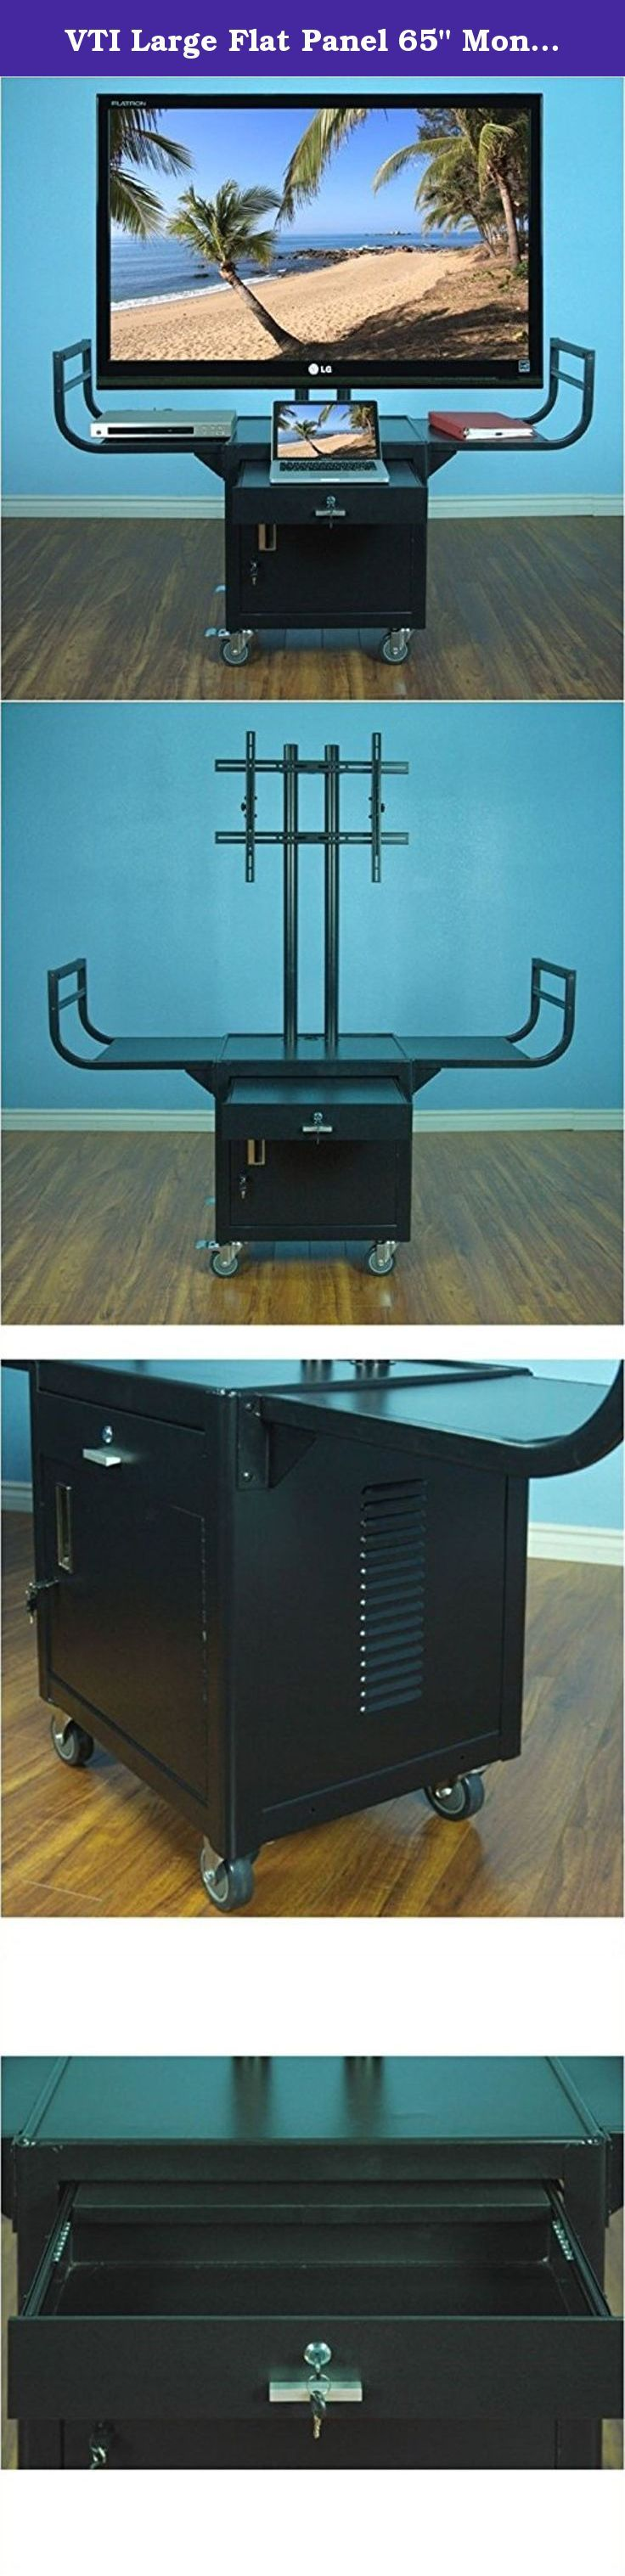 """VTI Large Flat Panel 65"""" Monitor Cabinet Cart in Black Powder Paint. Prepare large presentations quickly on a simple, mobile platform. Monitors are secured on via the universal twin mounting post. 3-in-1 handles permit ease of movement, TV screen protection and a wide, top shelf for additional presentation space. Includes cabinets to safely lock equipment when not in use. Features: Durable Steel Construction Black powder paint finish Swivel casters installed for easy mobility Lockable..."""